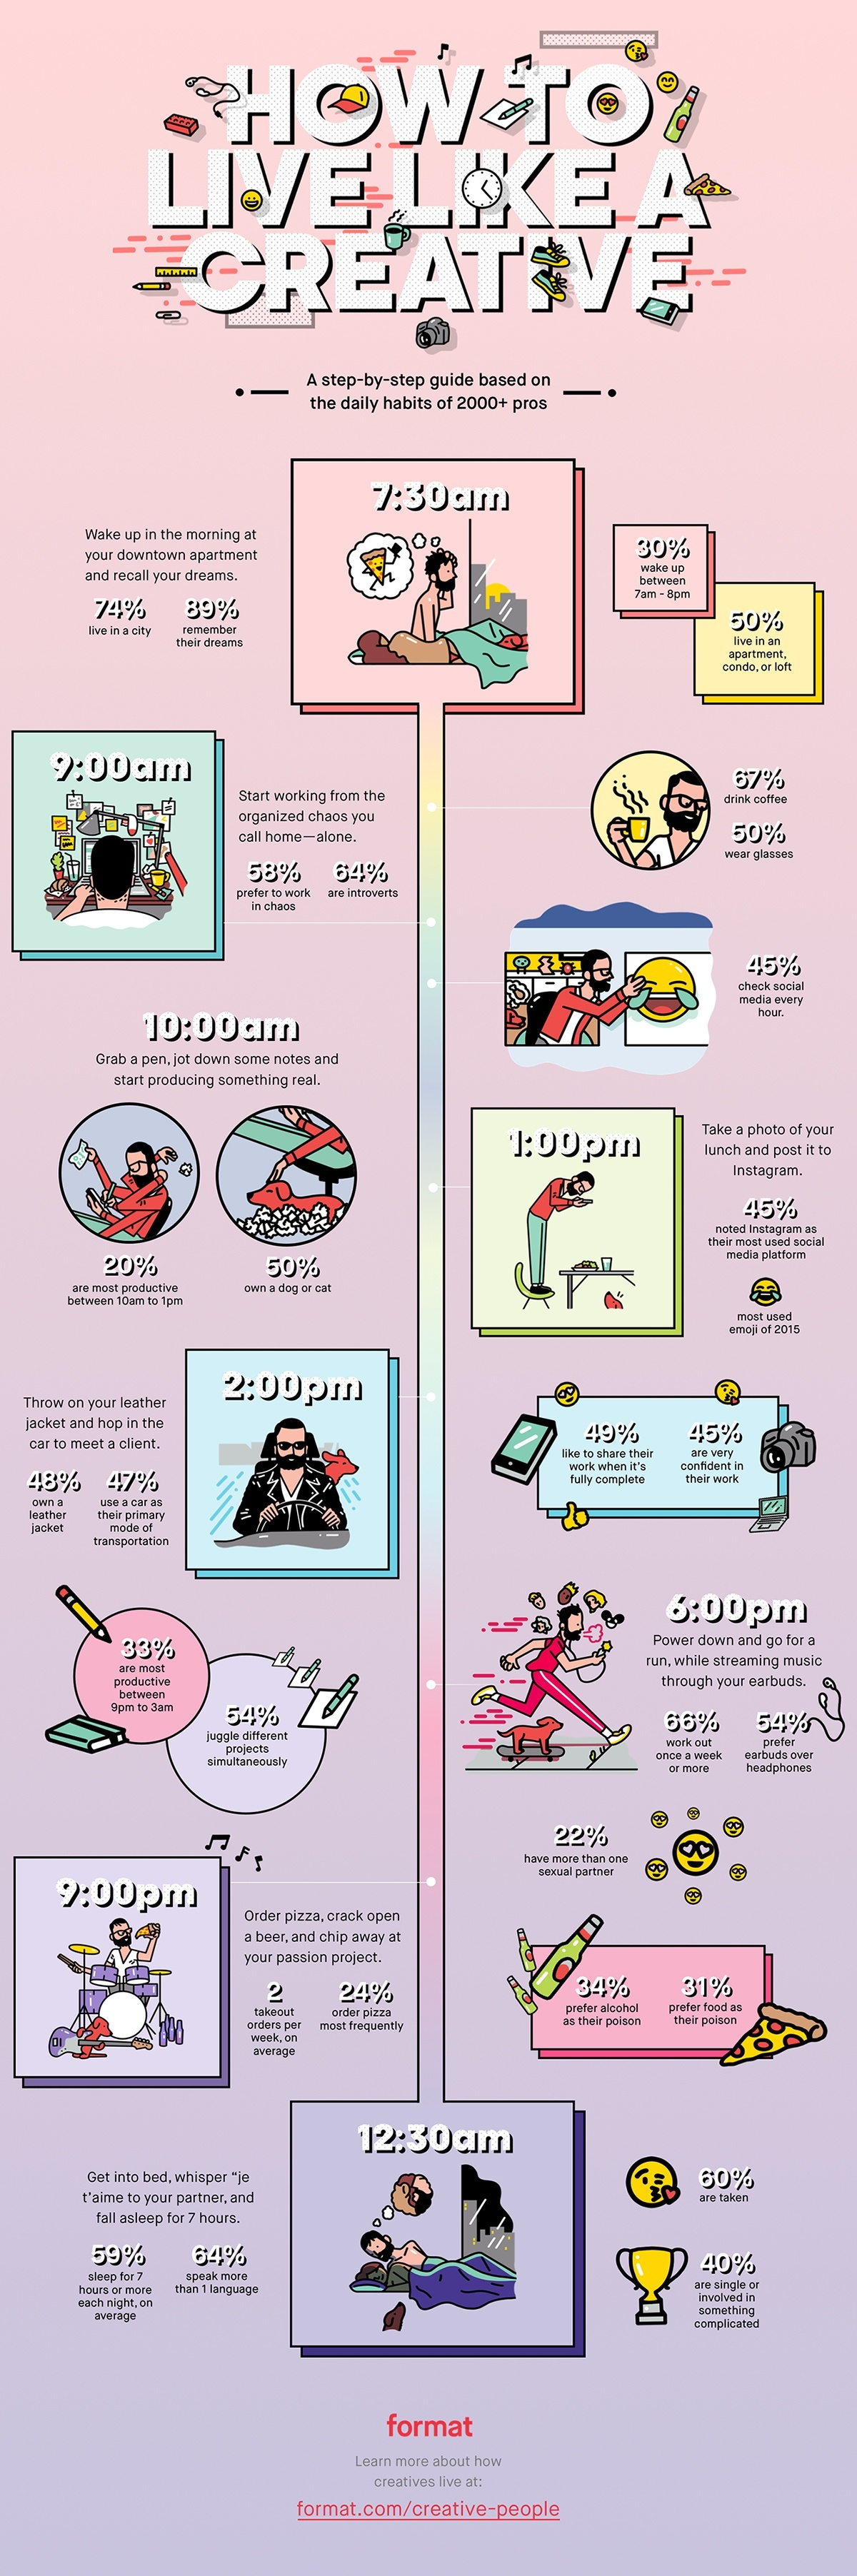 BI_160208_how-to-live-like-a-creative-infographic